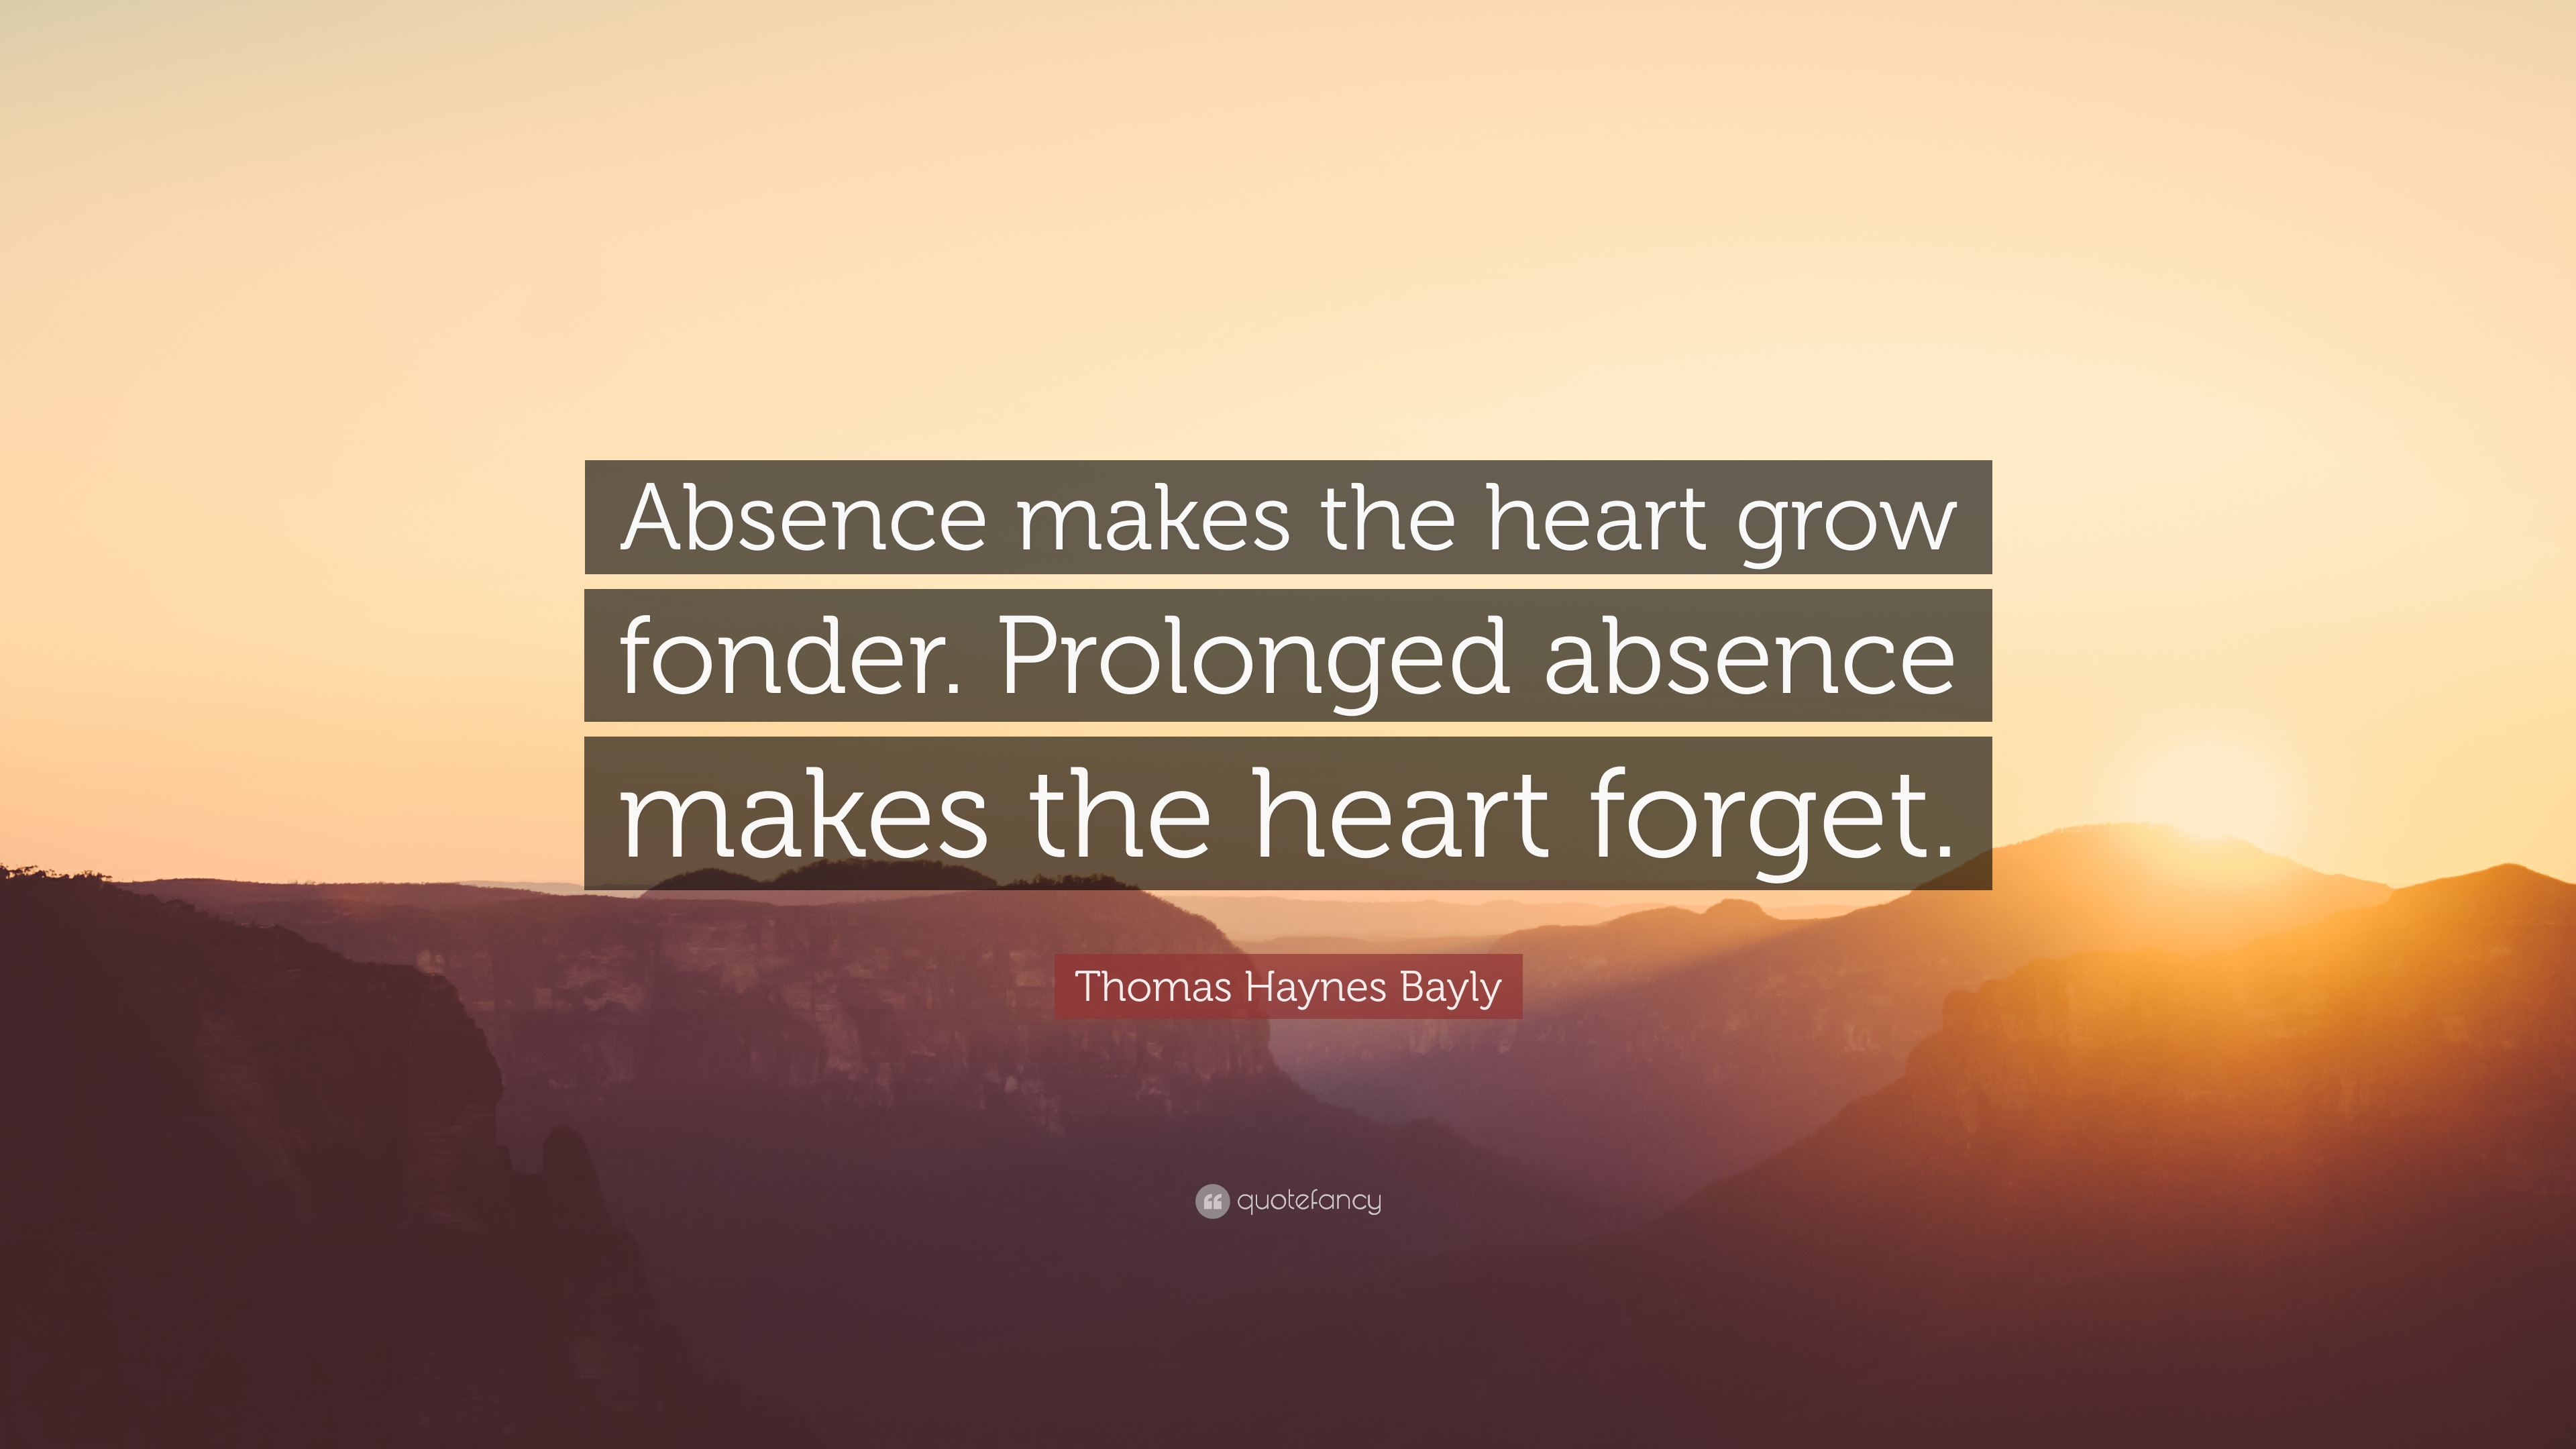 When absence doesnt make the heart grow fonder